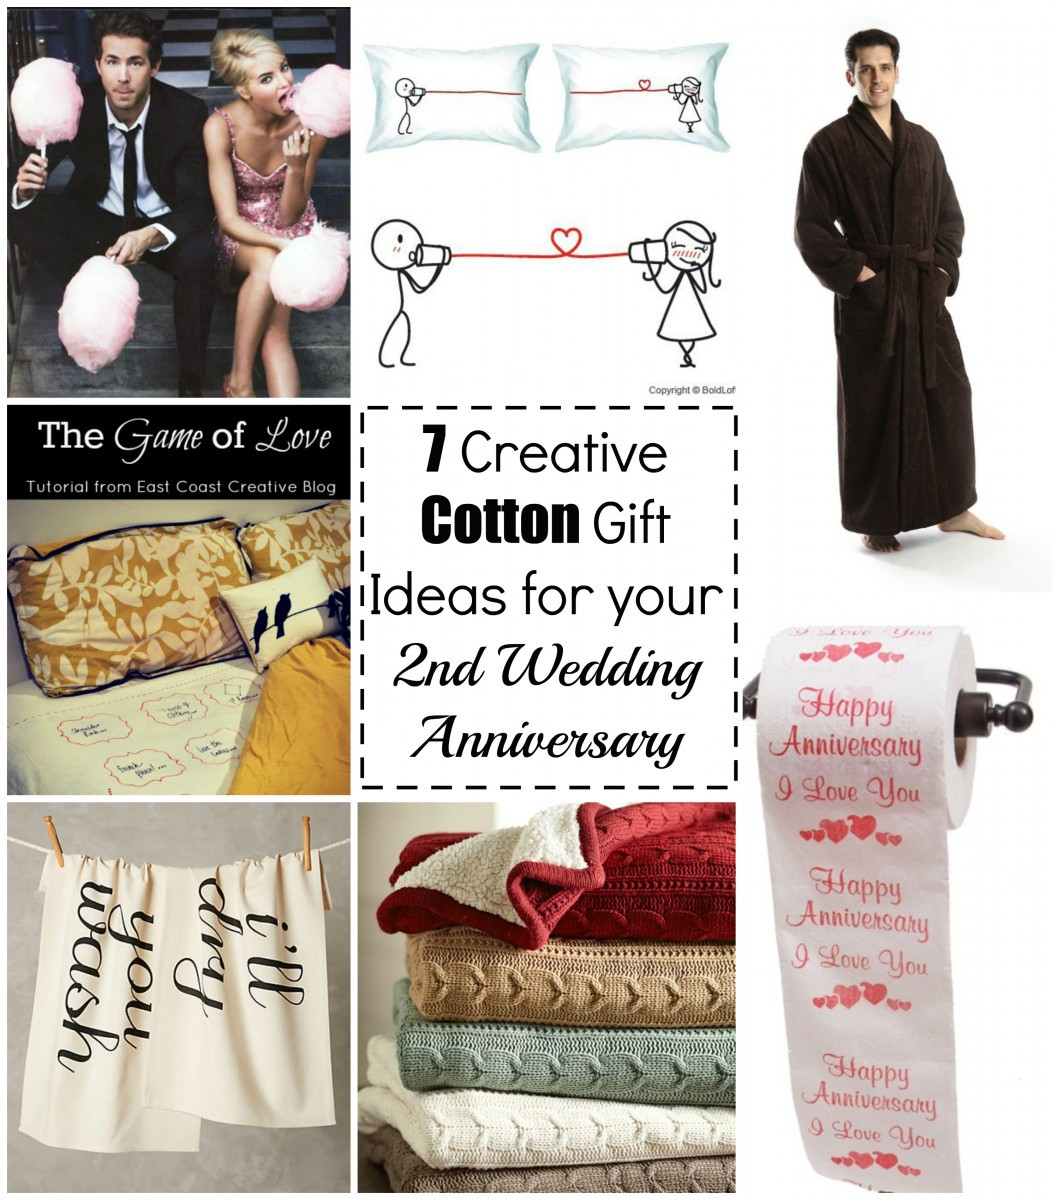 Best ideas about 2Nd Wedding Gift Ideas . Save or Pin 7 Cotton Gift Ideas for your 2nd Wedding Anniversary Now.